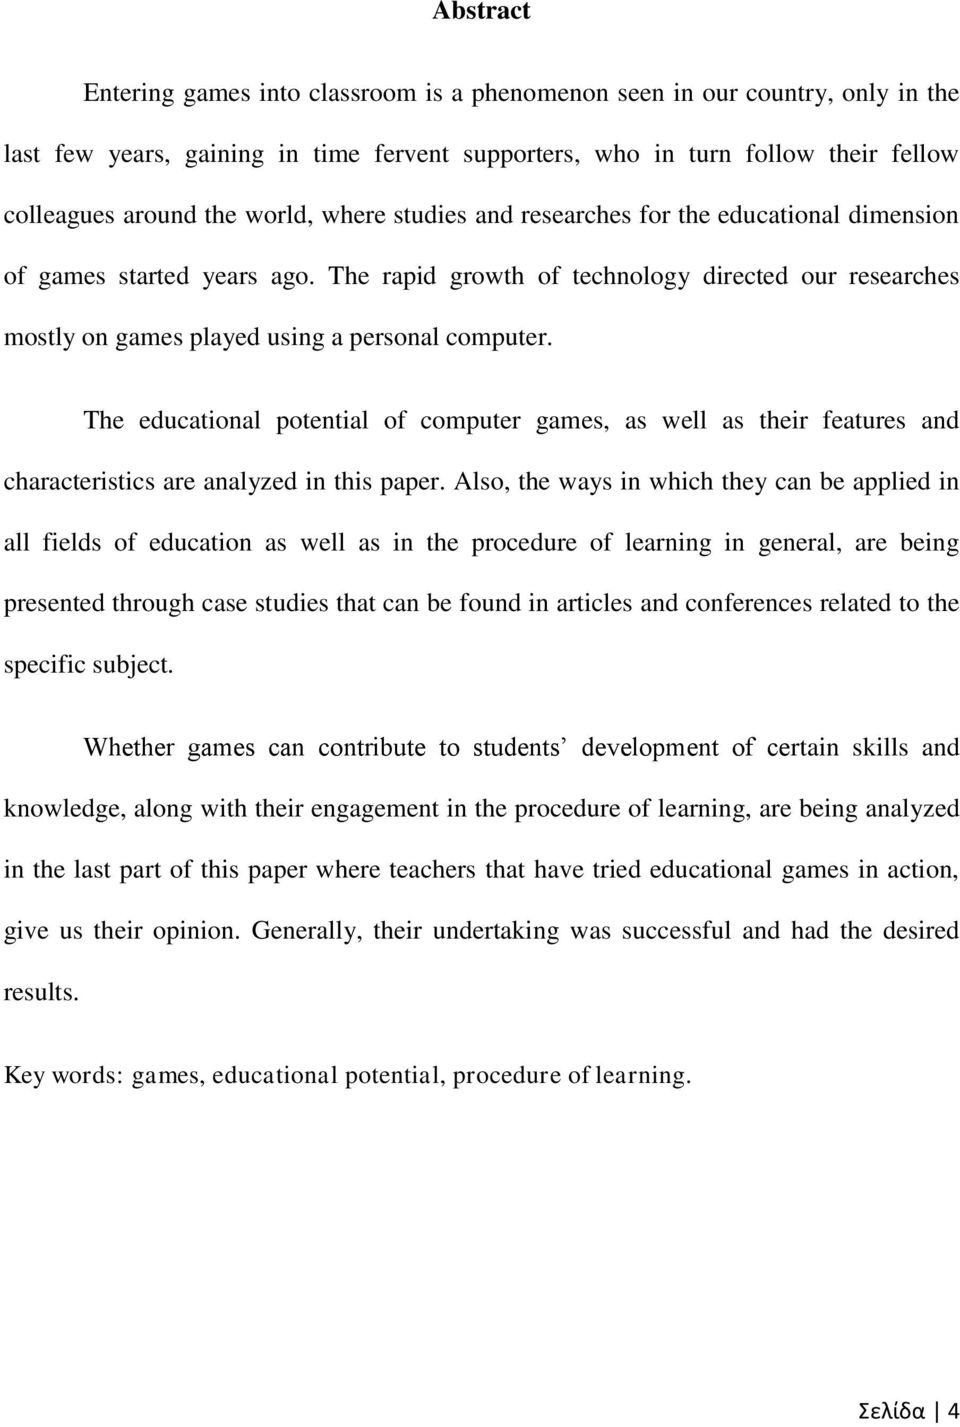 The educational potential of computer games, as well as their features and characteristics are analyzed in this paper.